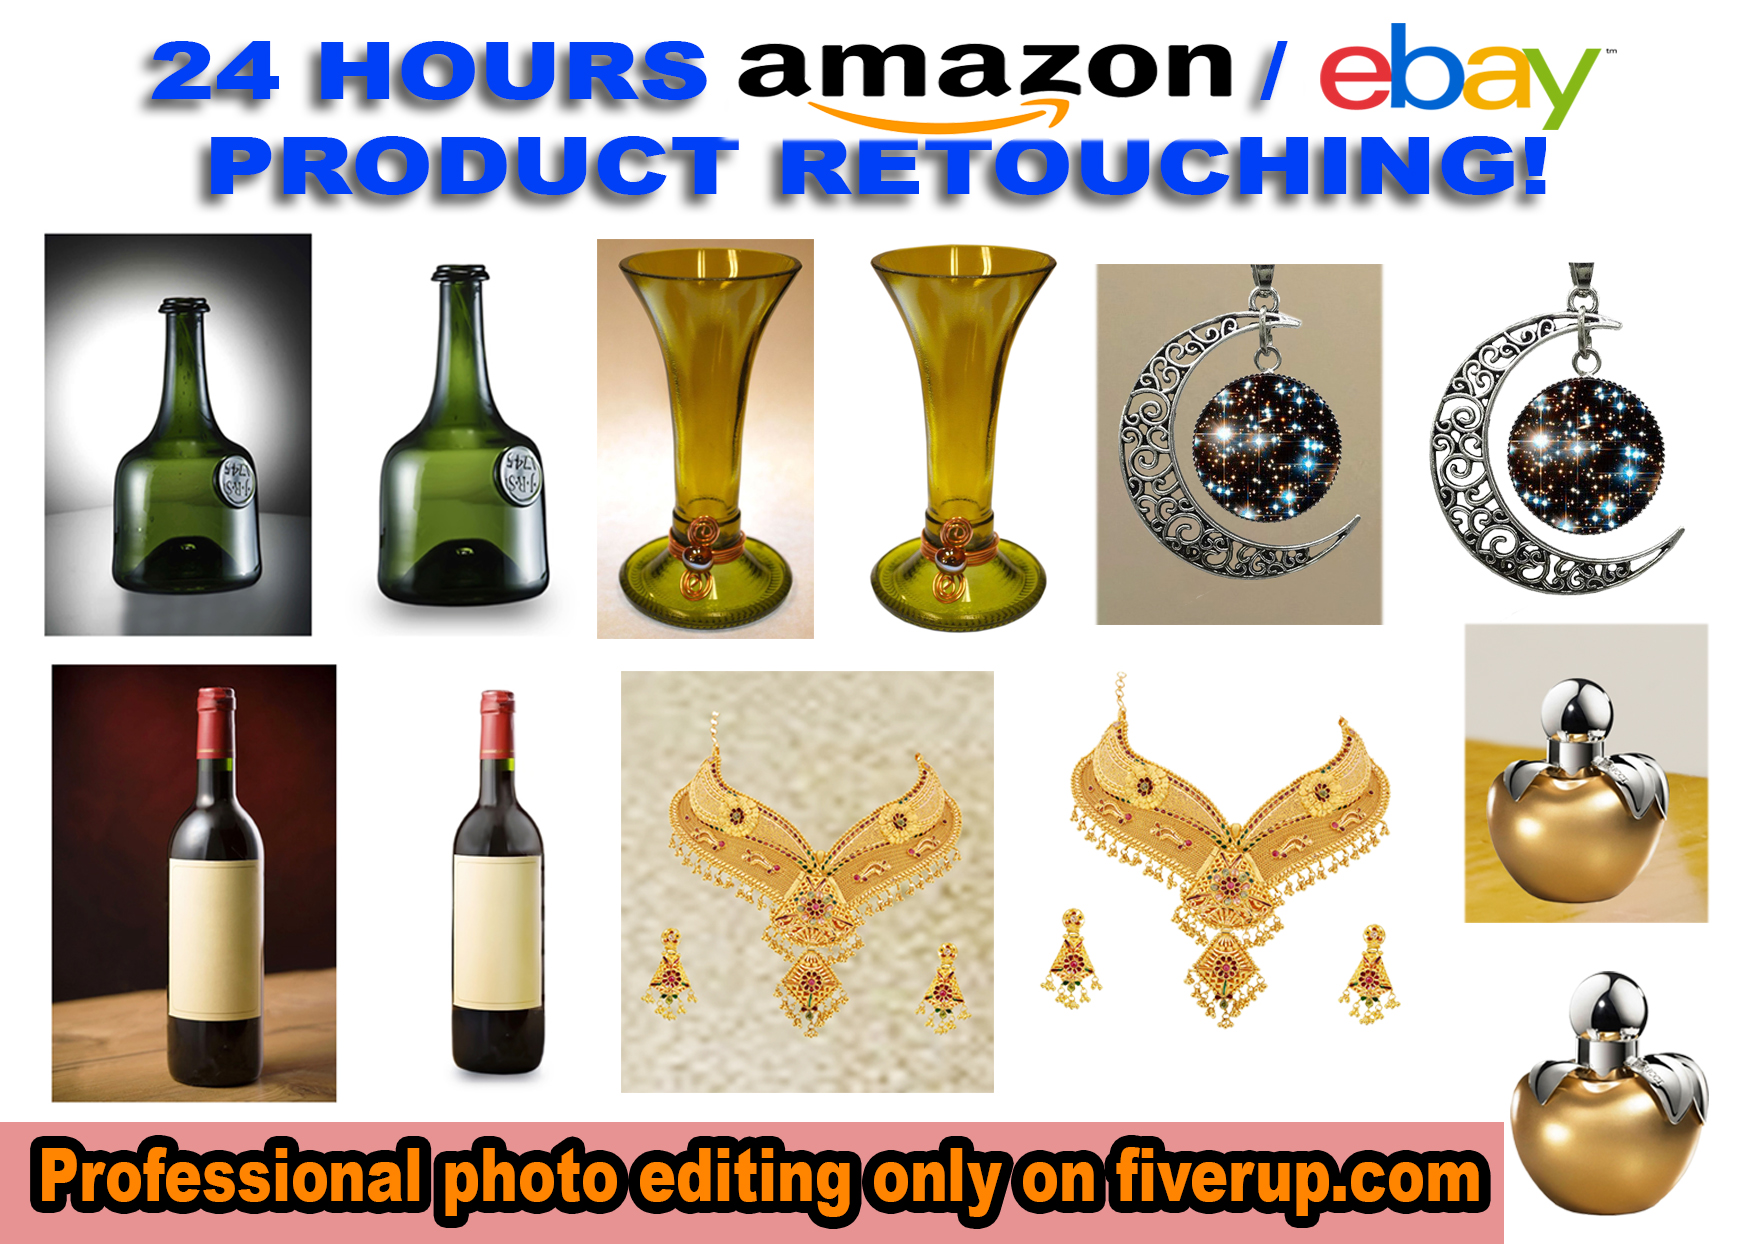 professionally retouch 20 product images for Amazon,Ebay in 24hrs